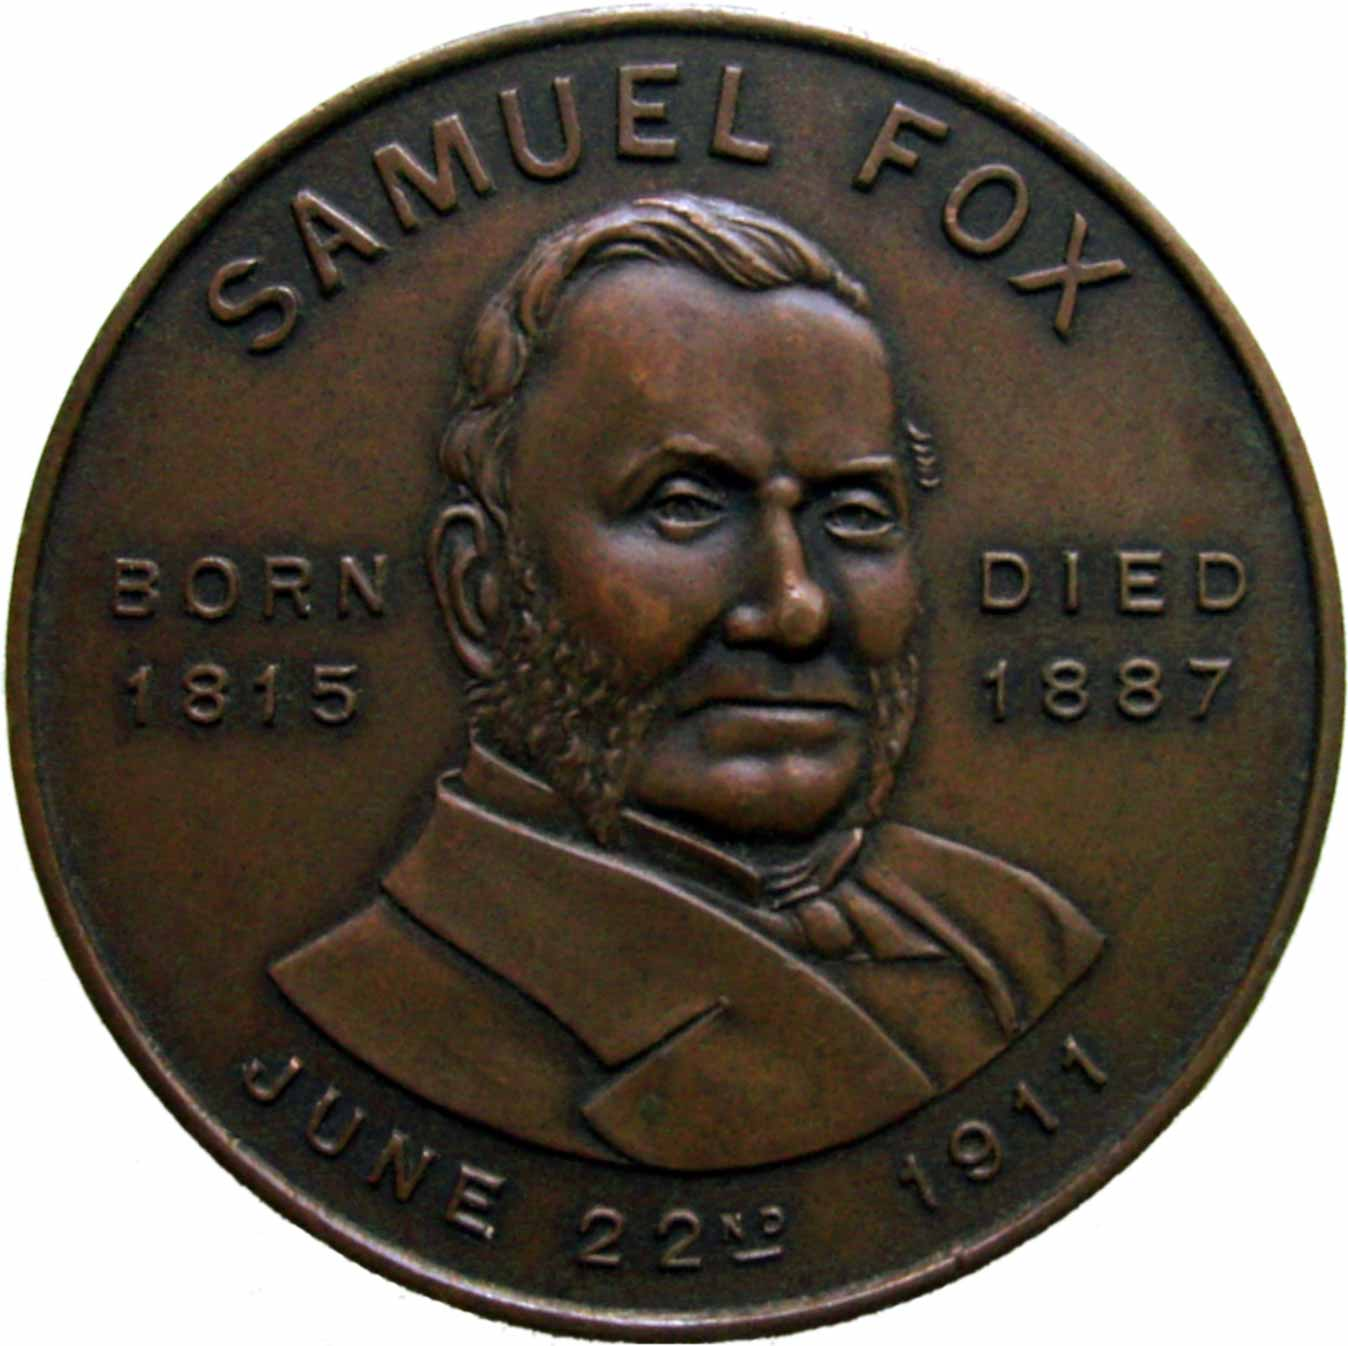 Image result for samuel Fox coin